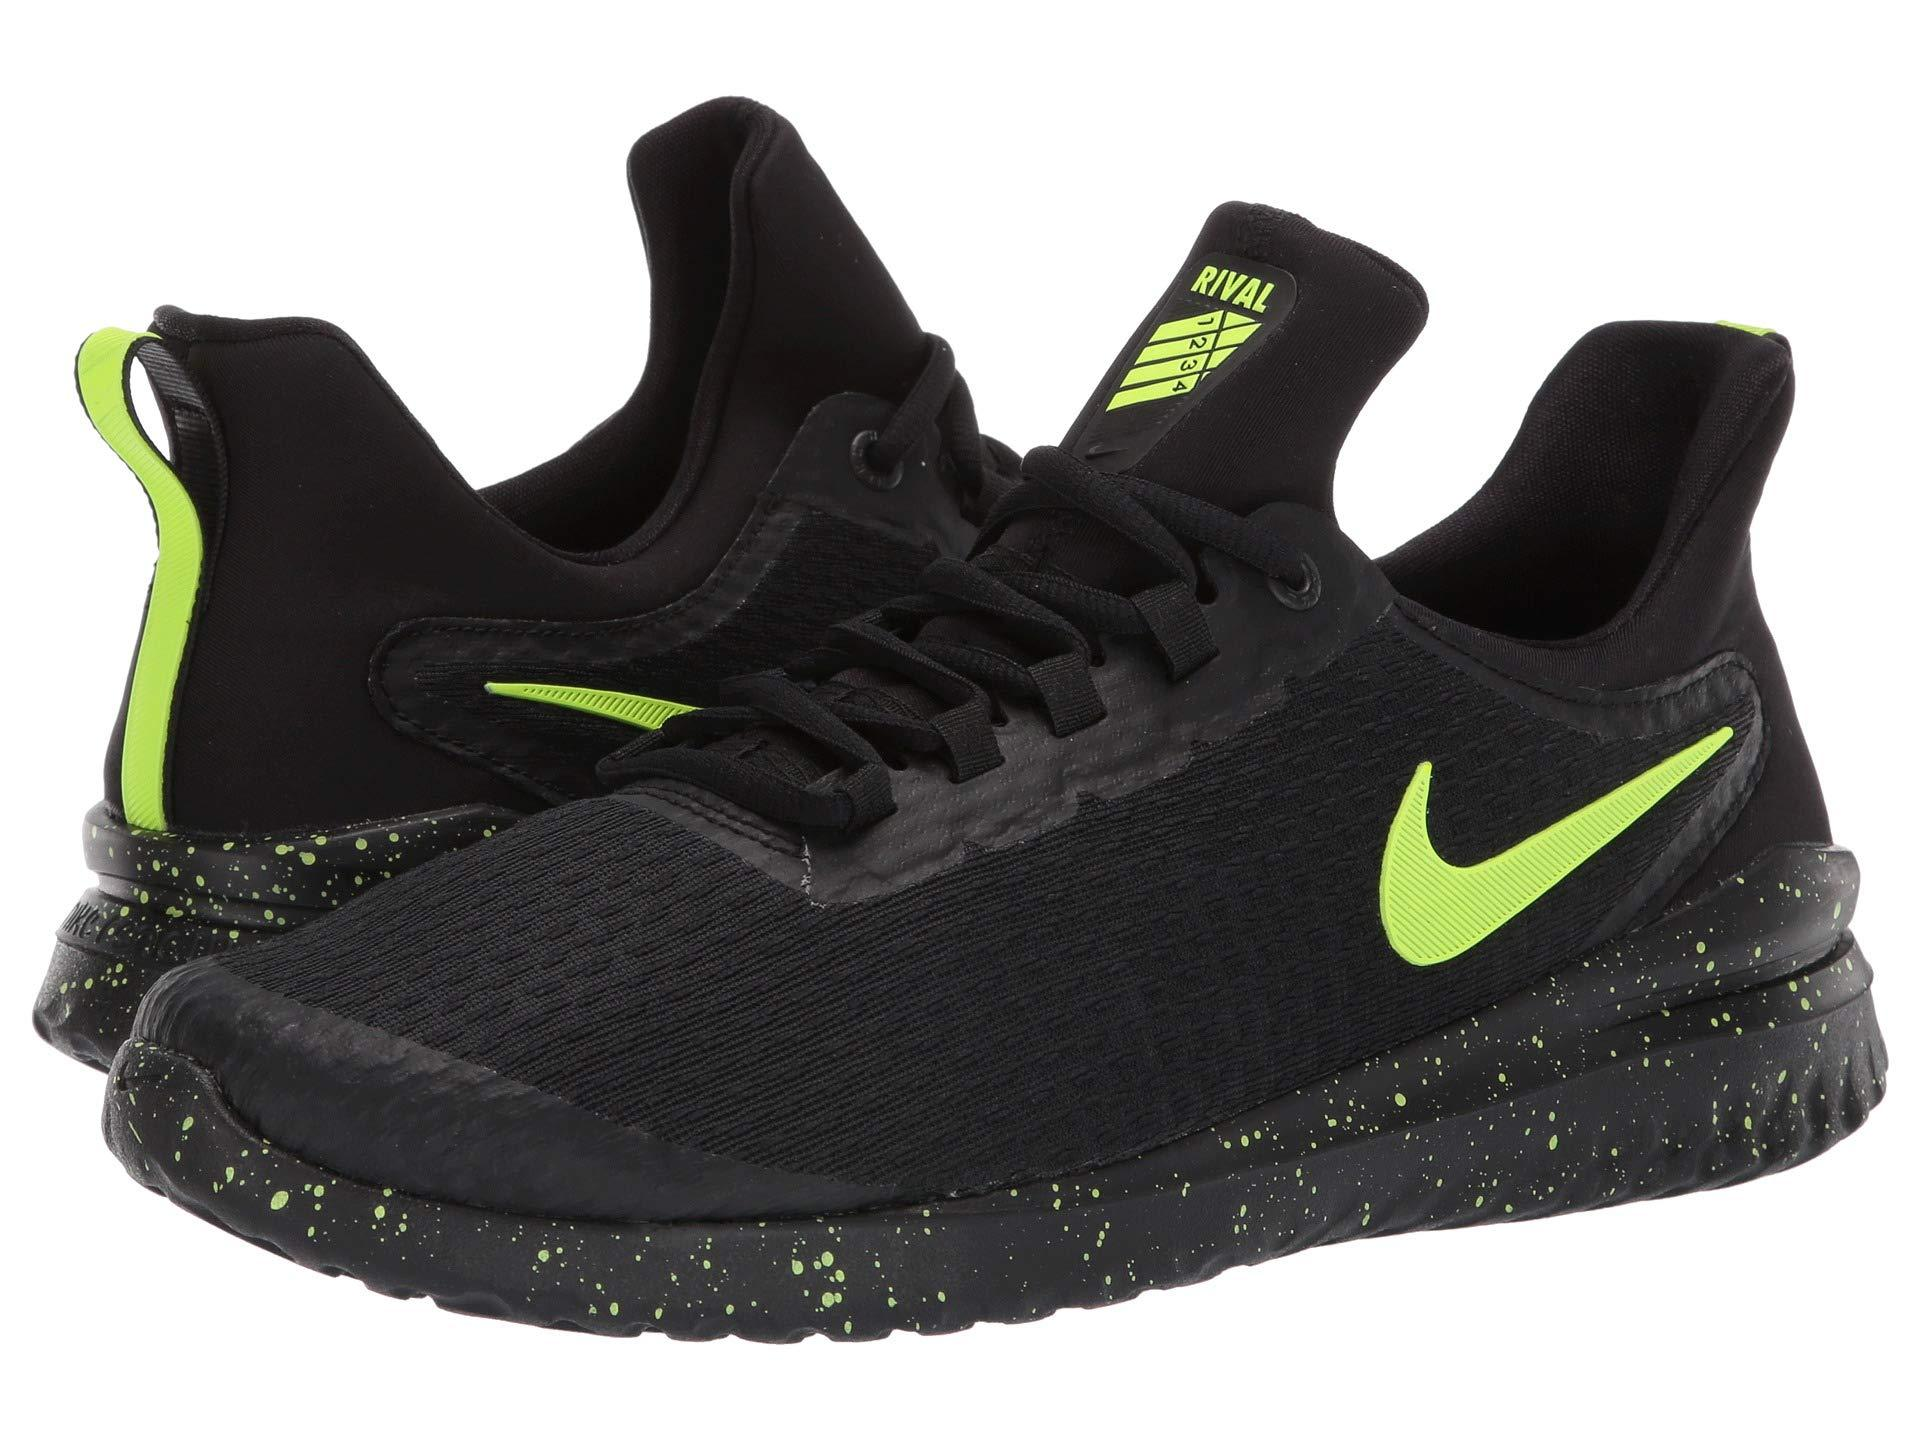 64d87c2672bc6a Lyst - Nike Renew Rival (black volt) Men s Running Shoes in Black ...